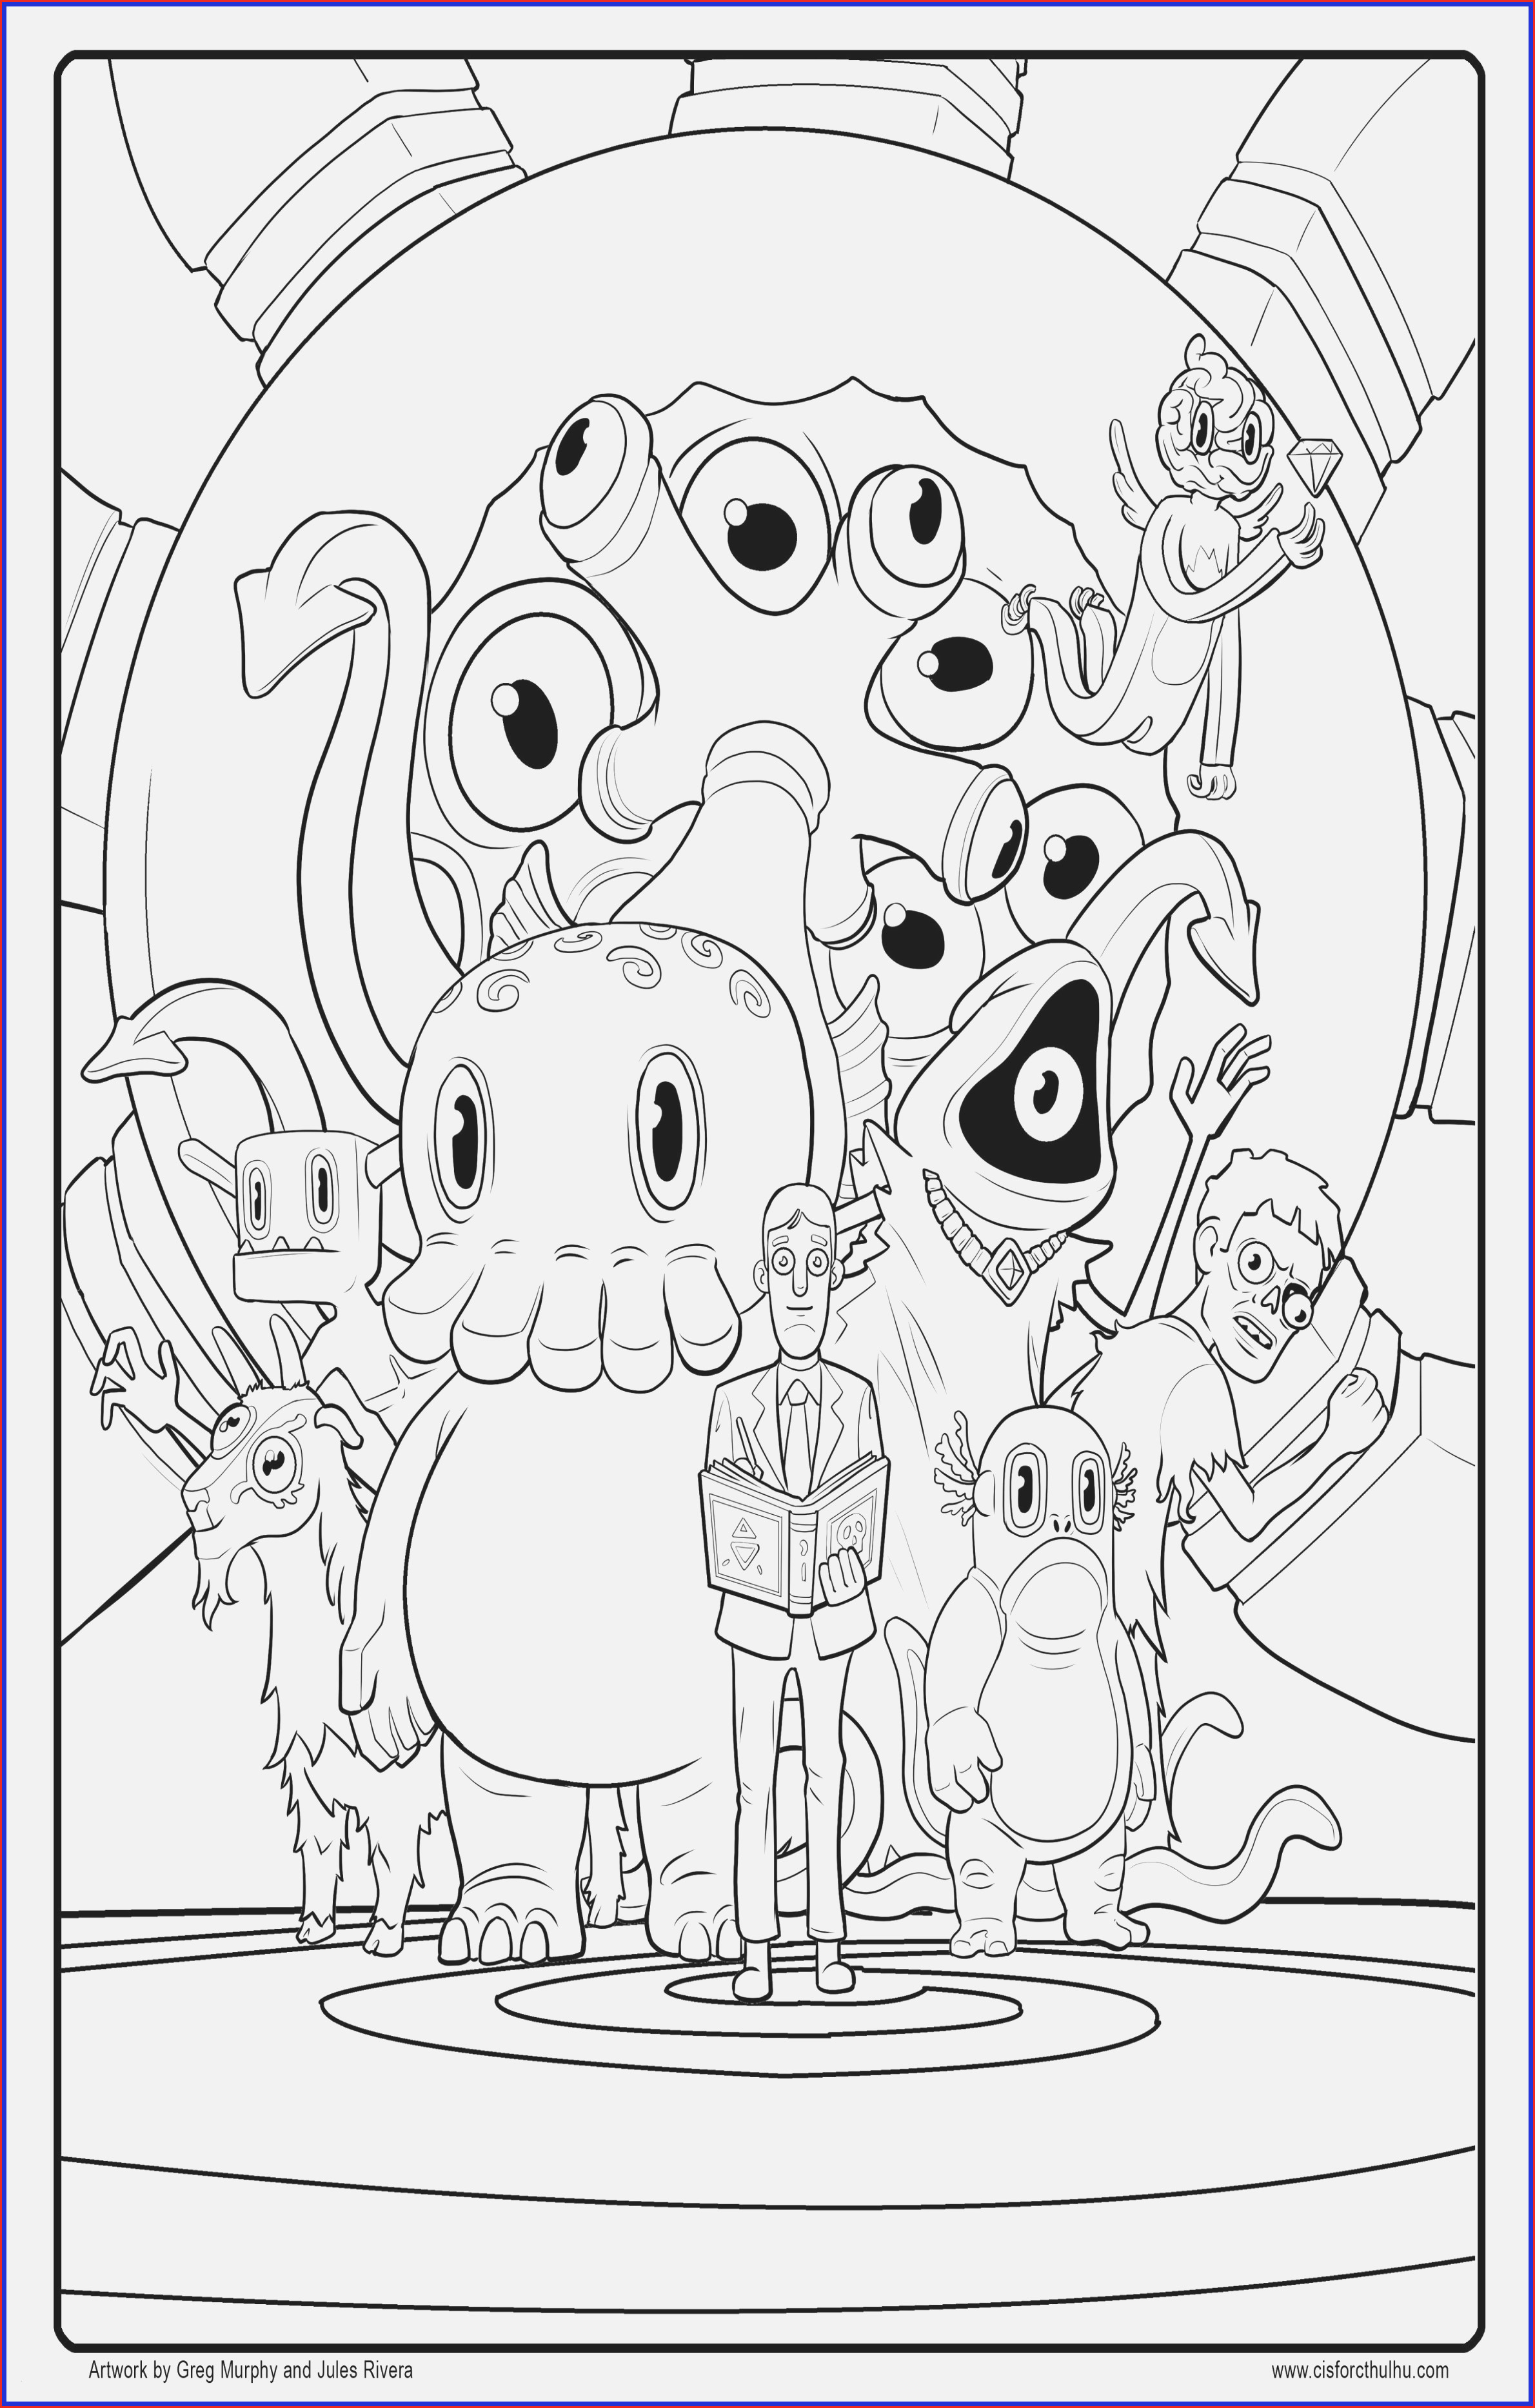 Crayola State Coloring Pages Collection